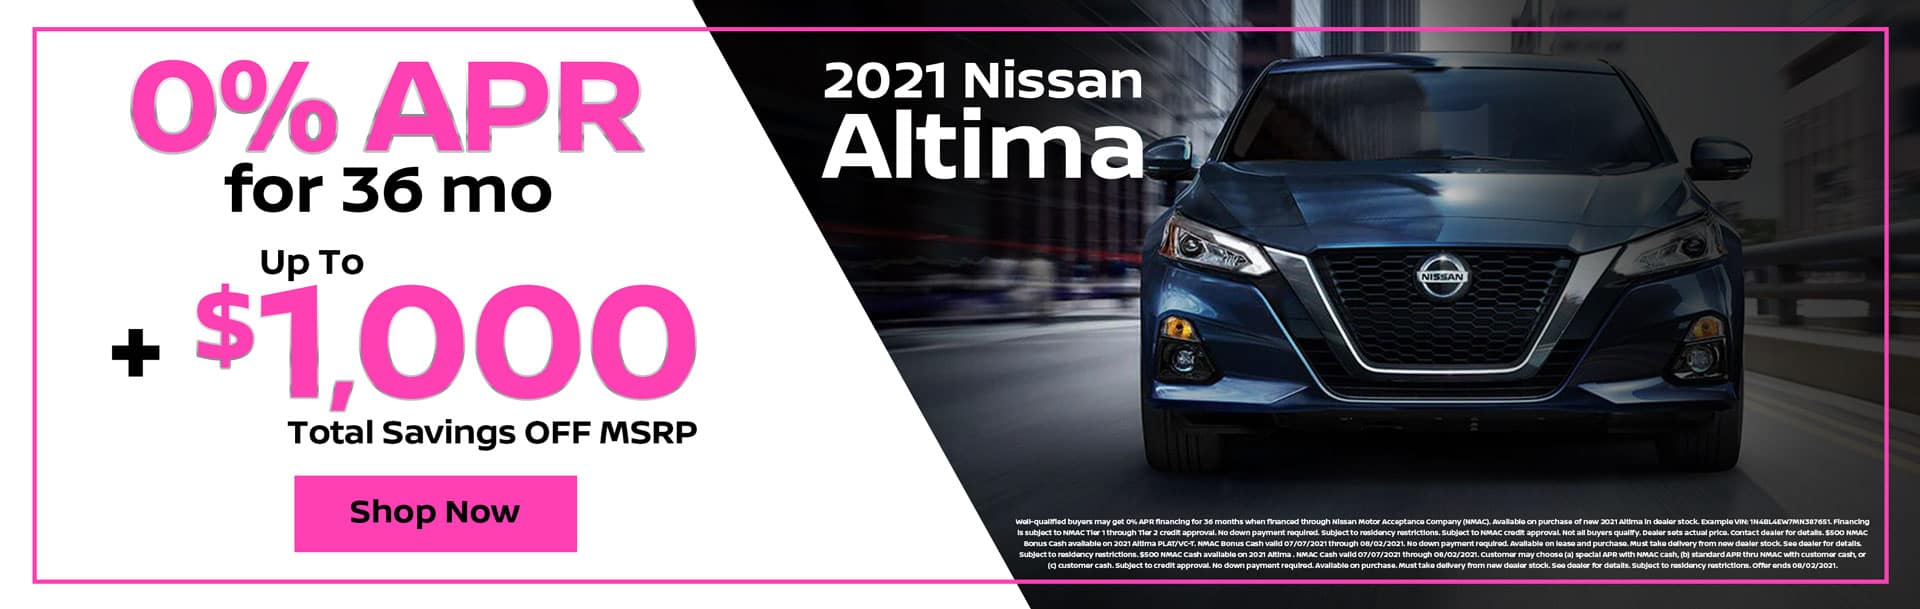 2021 Nissan Altima: 0% APR for mo + $1,000 OFF MSRP